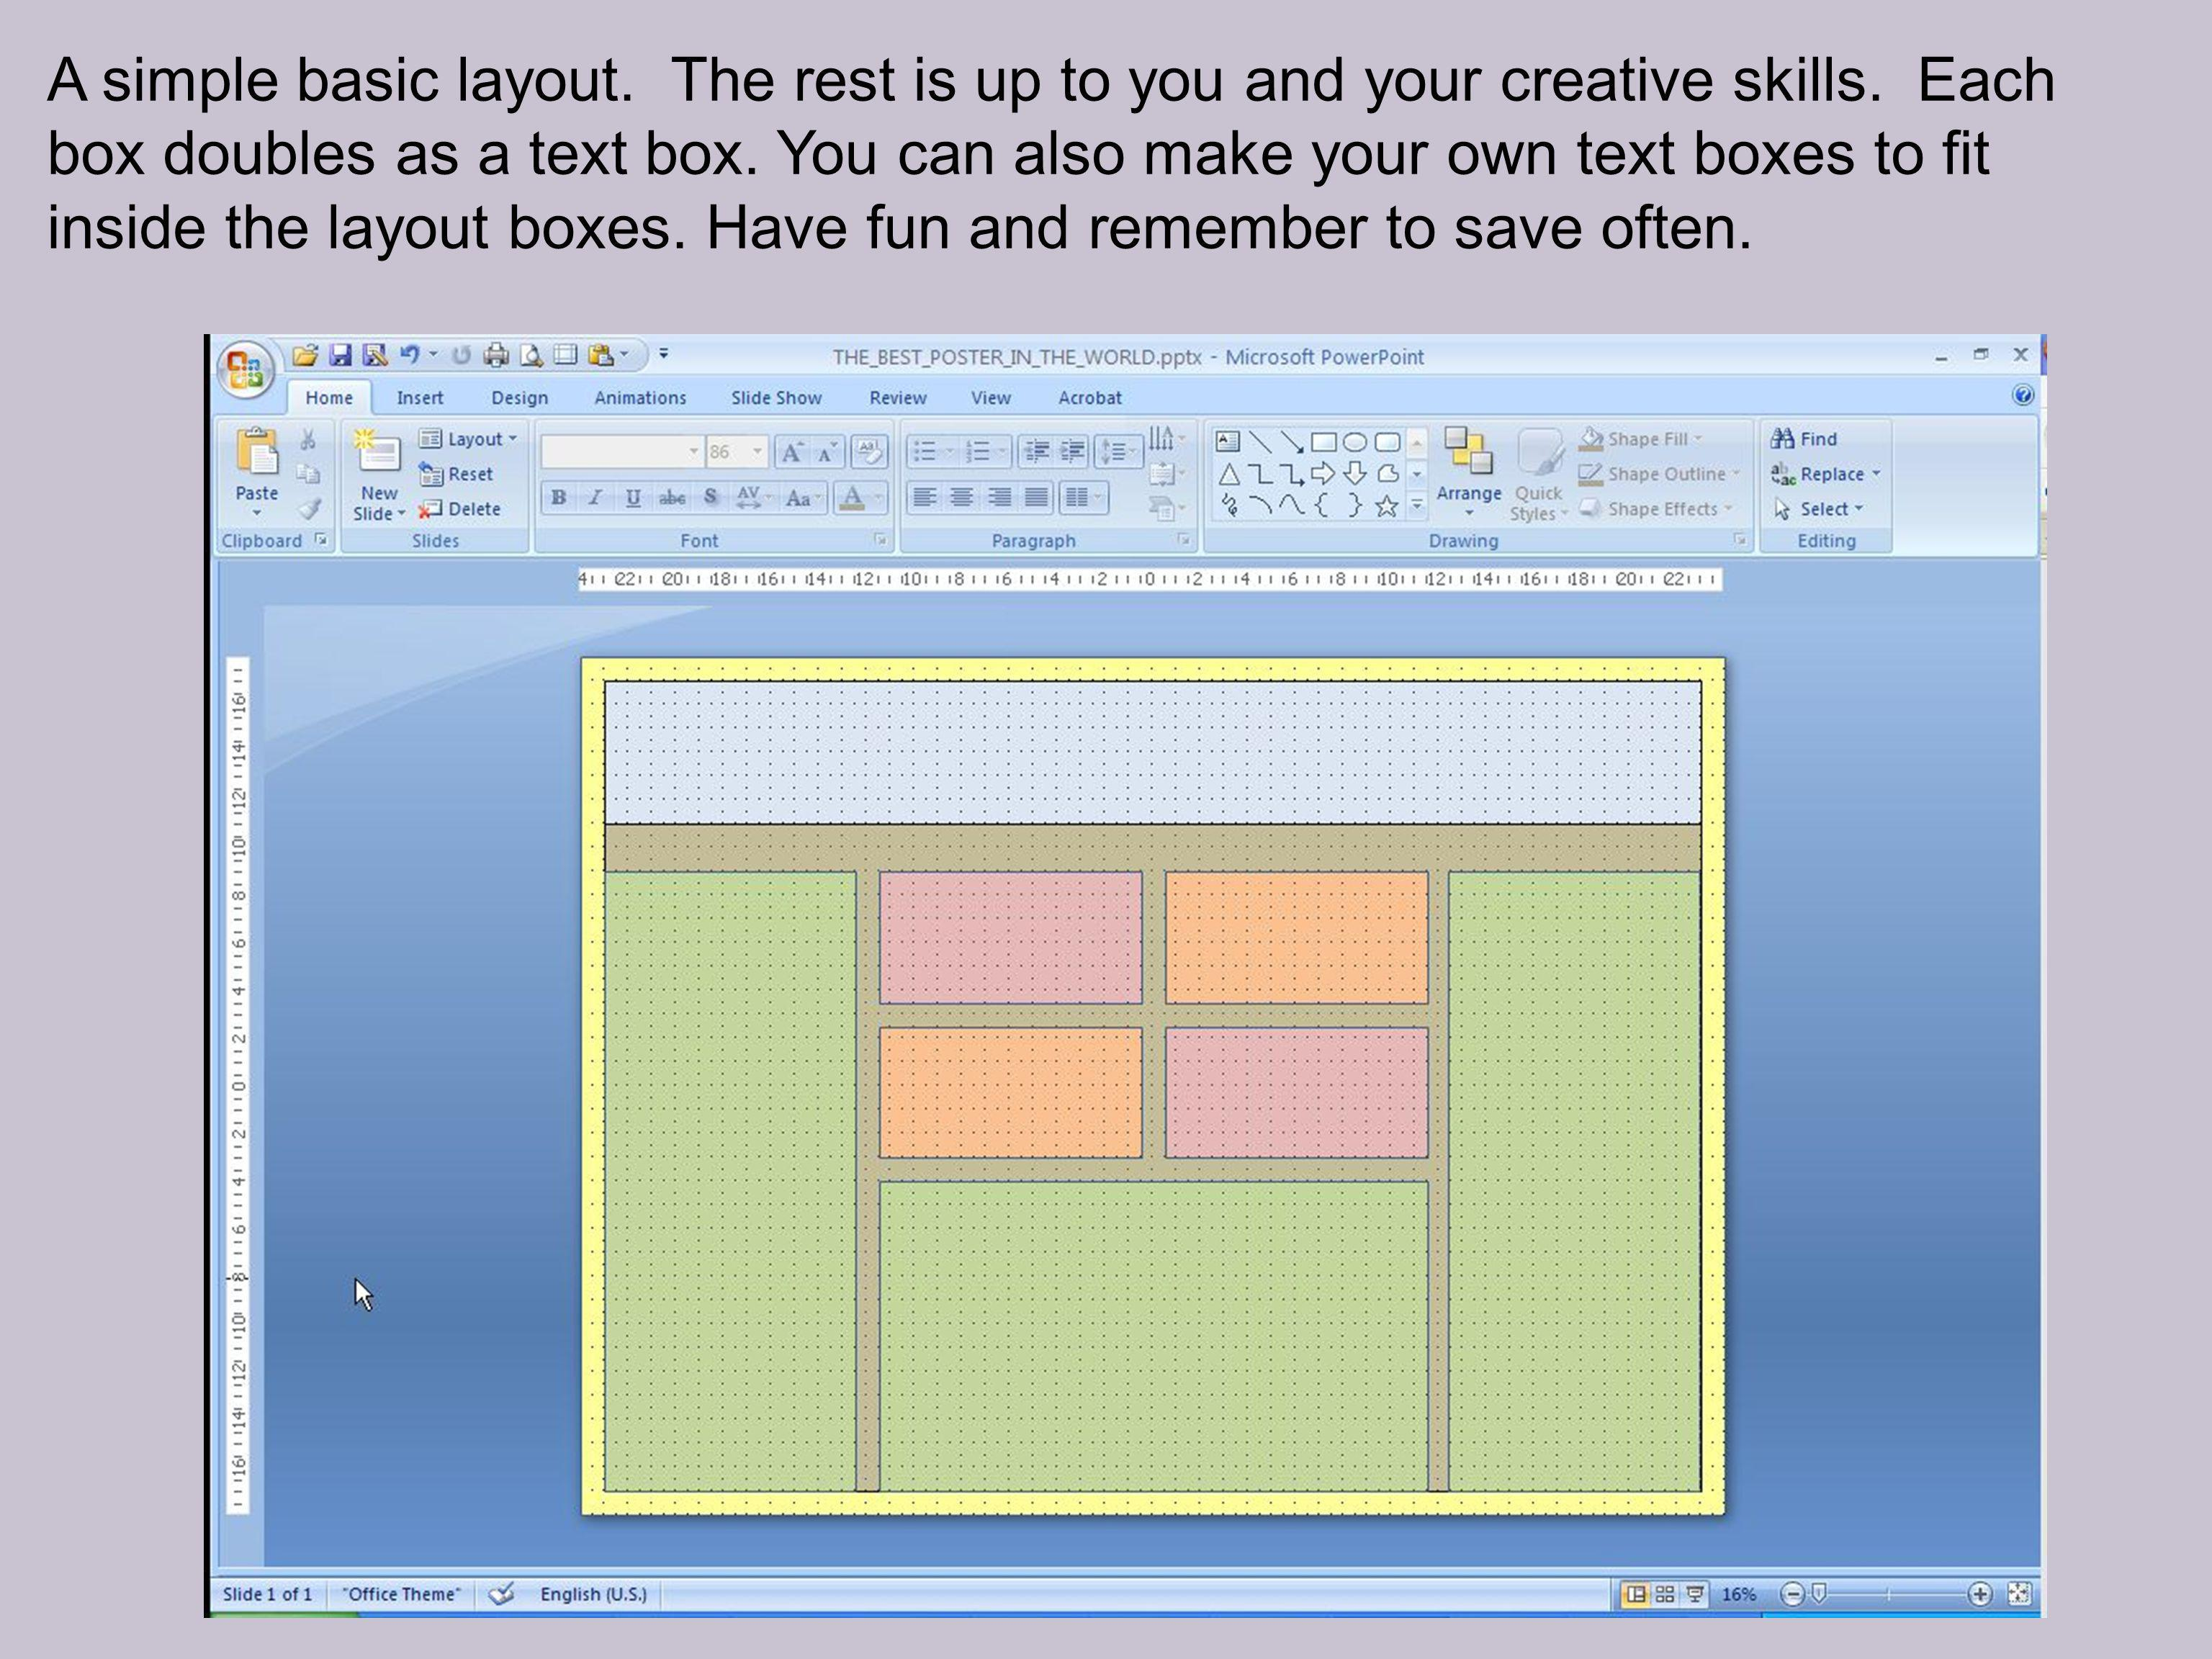 A simple basic layout. The rest is up to you and your creative skills